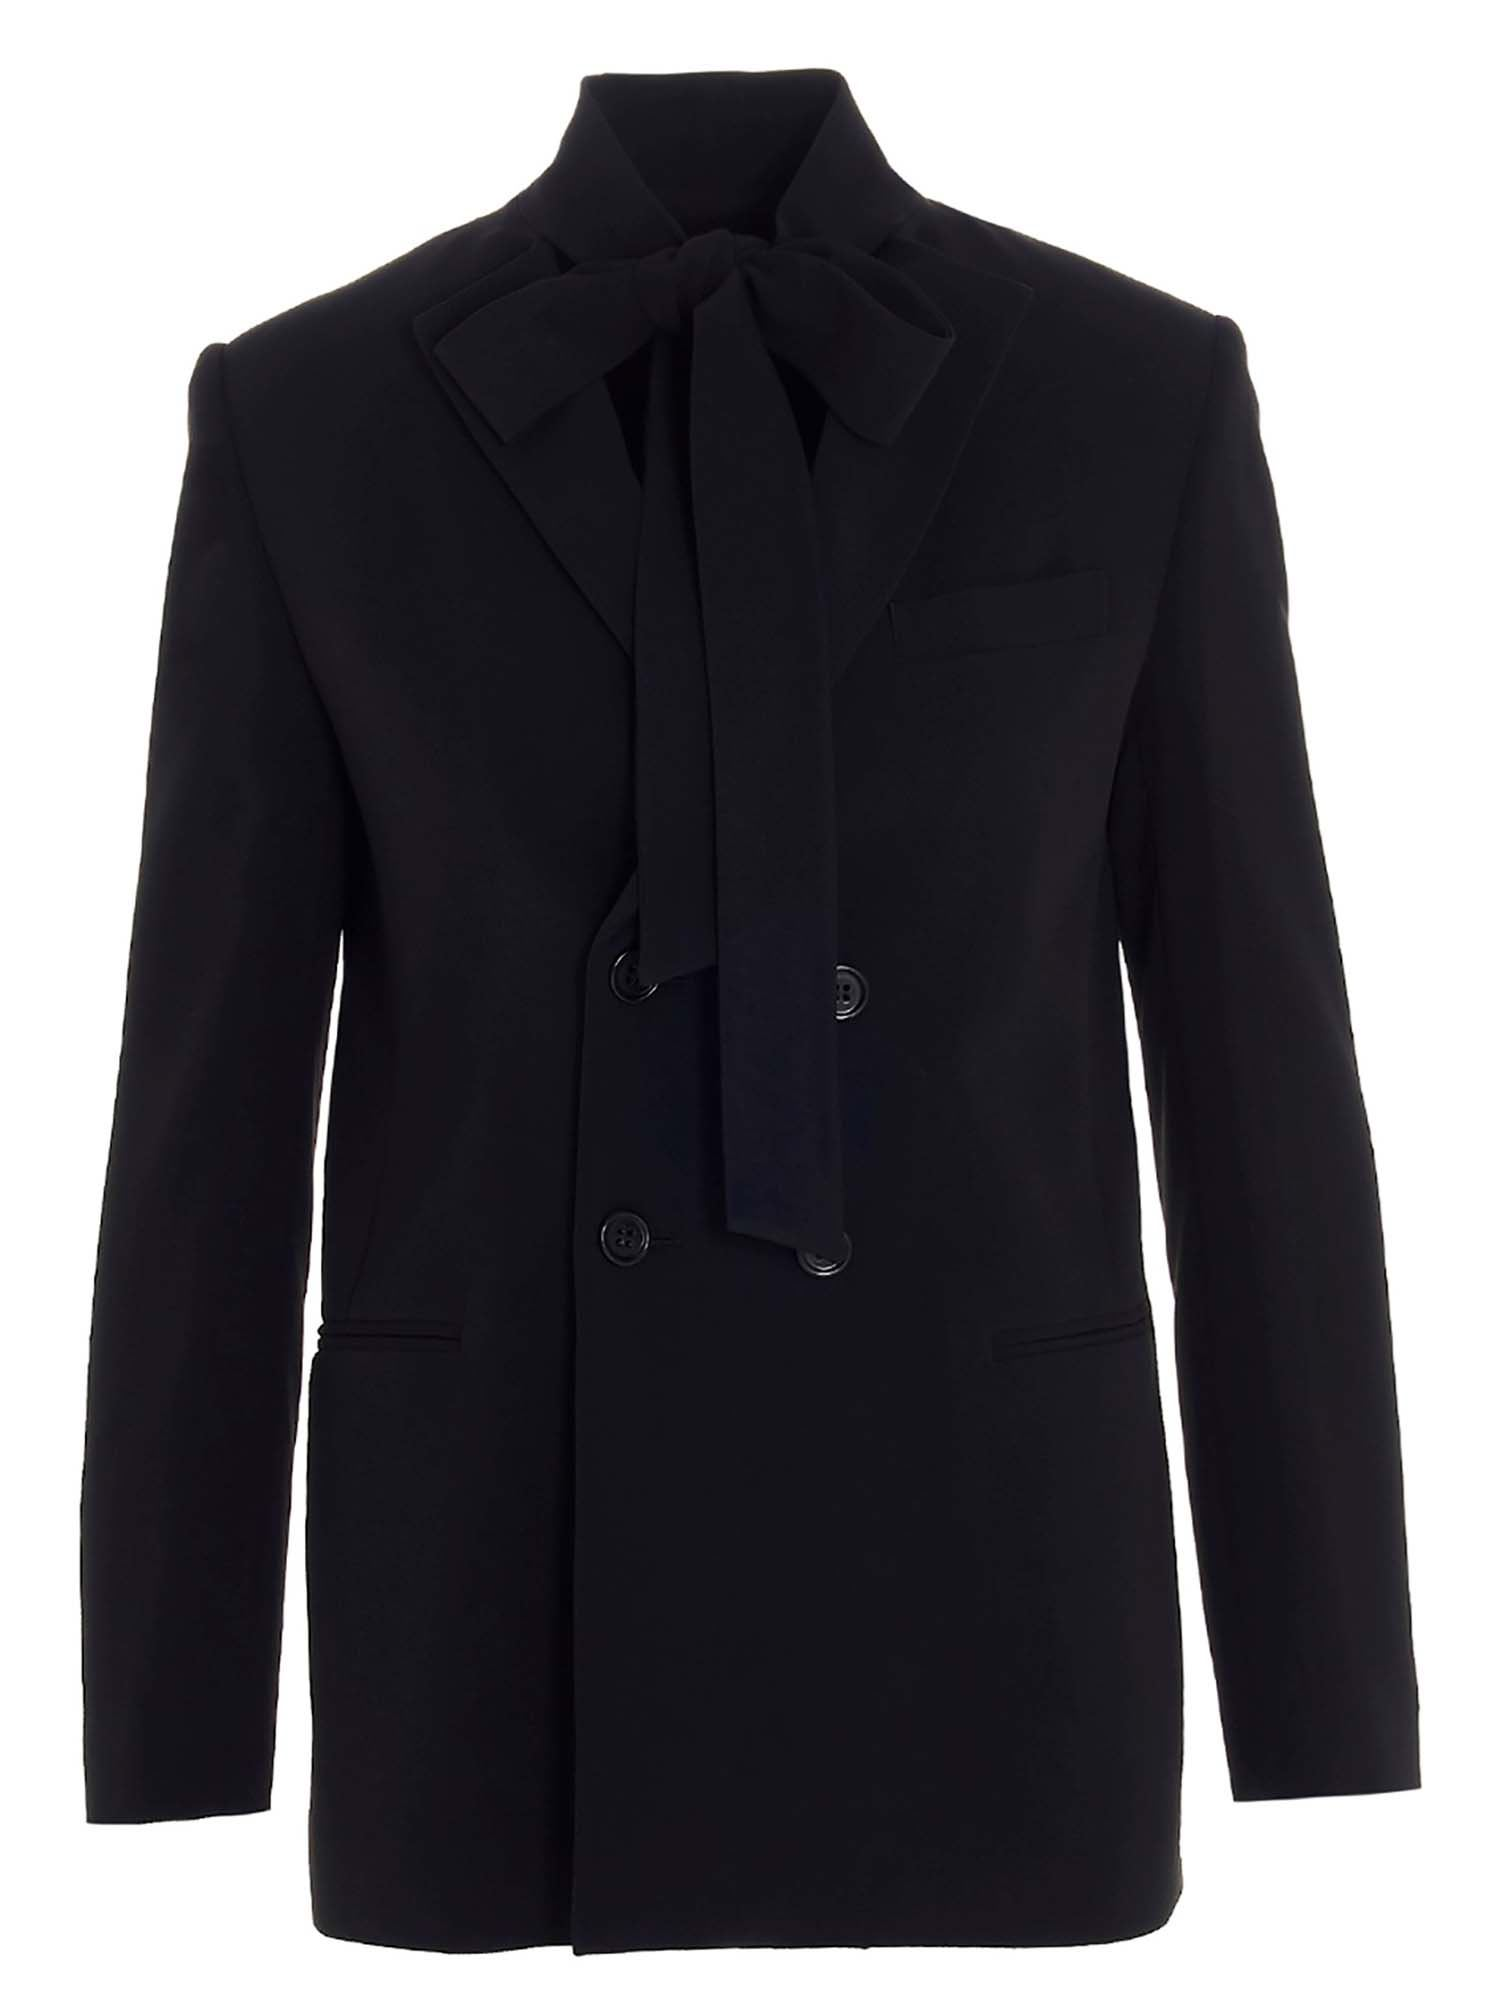 Red Valentino DOUBLE-BREASTED BOW JACKET IN BLACK